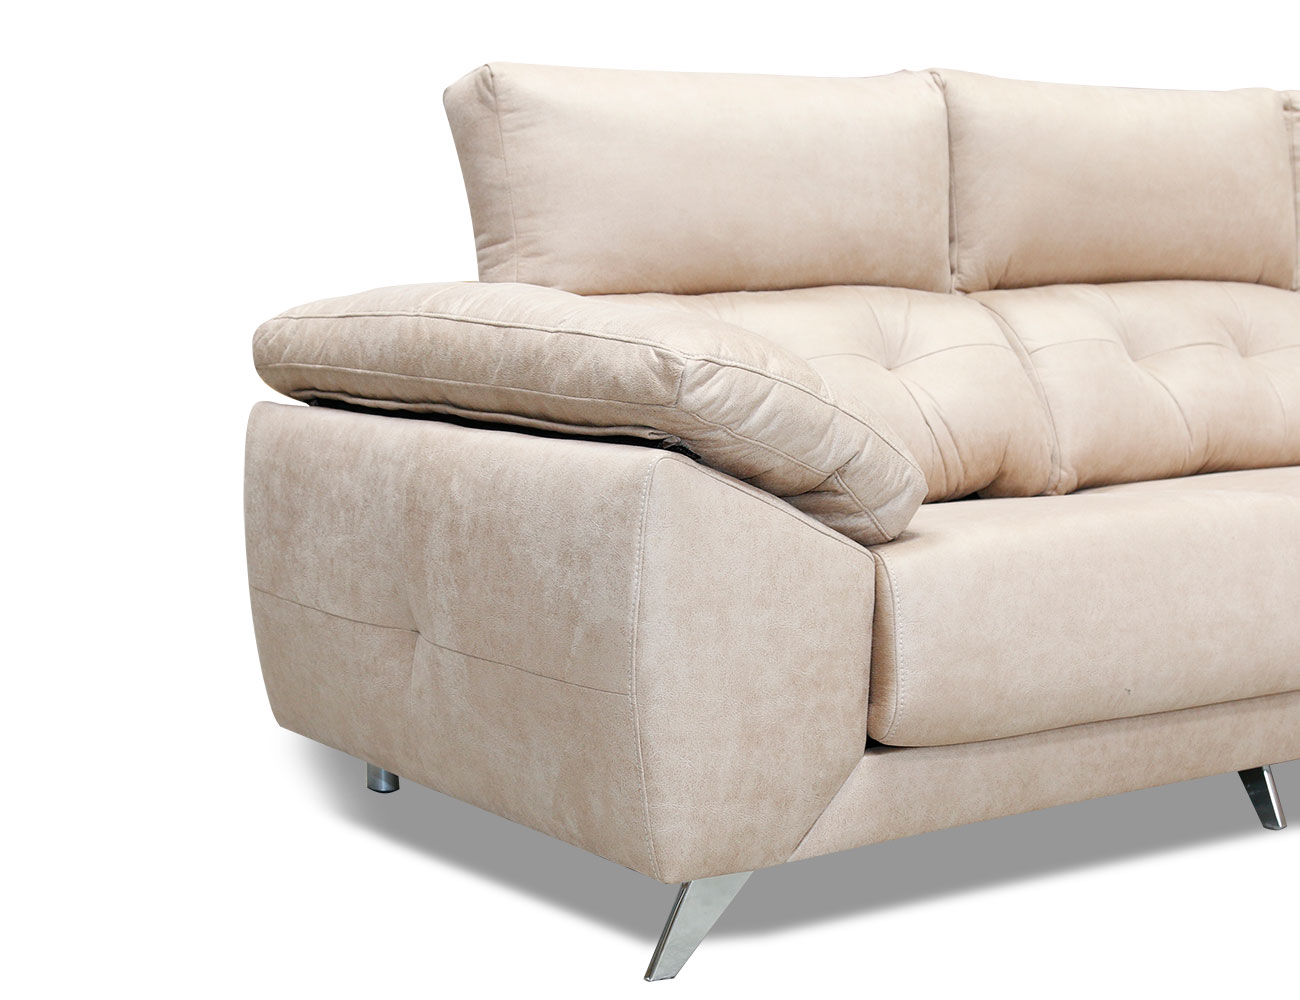 Sofa chaiselongue capitone anti machas gama alta 1